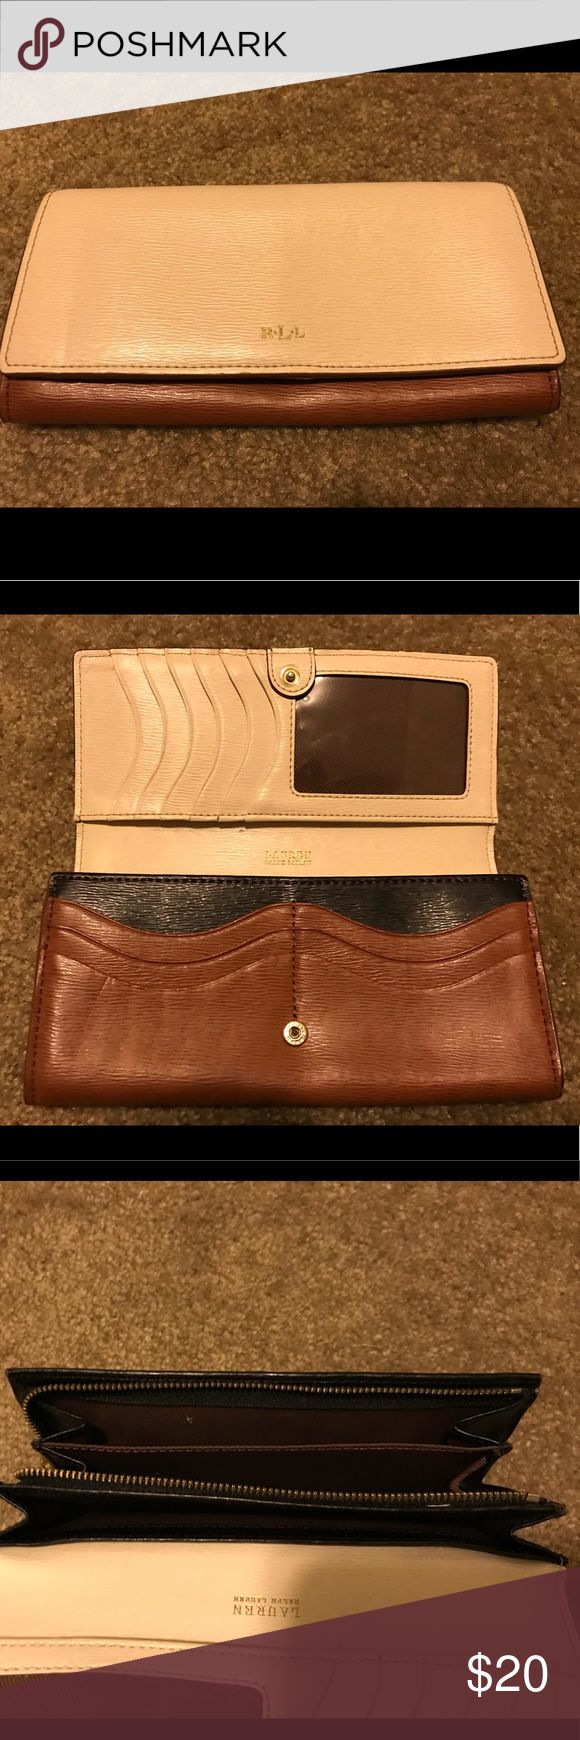 I just added this listing on Poshmark: Ralph Lauren Wallet. #shopmycloset #poshmark #fashion #shopping #style #forsale #Lauren Ralph Lauren #Handbags